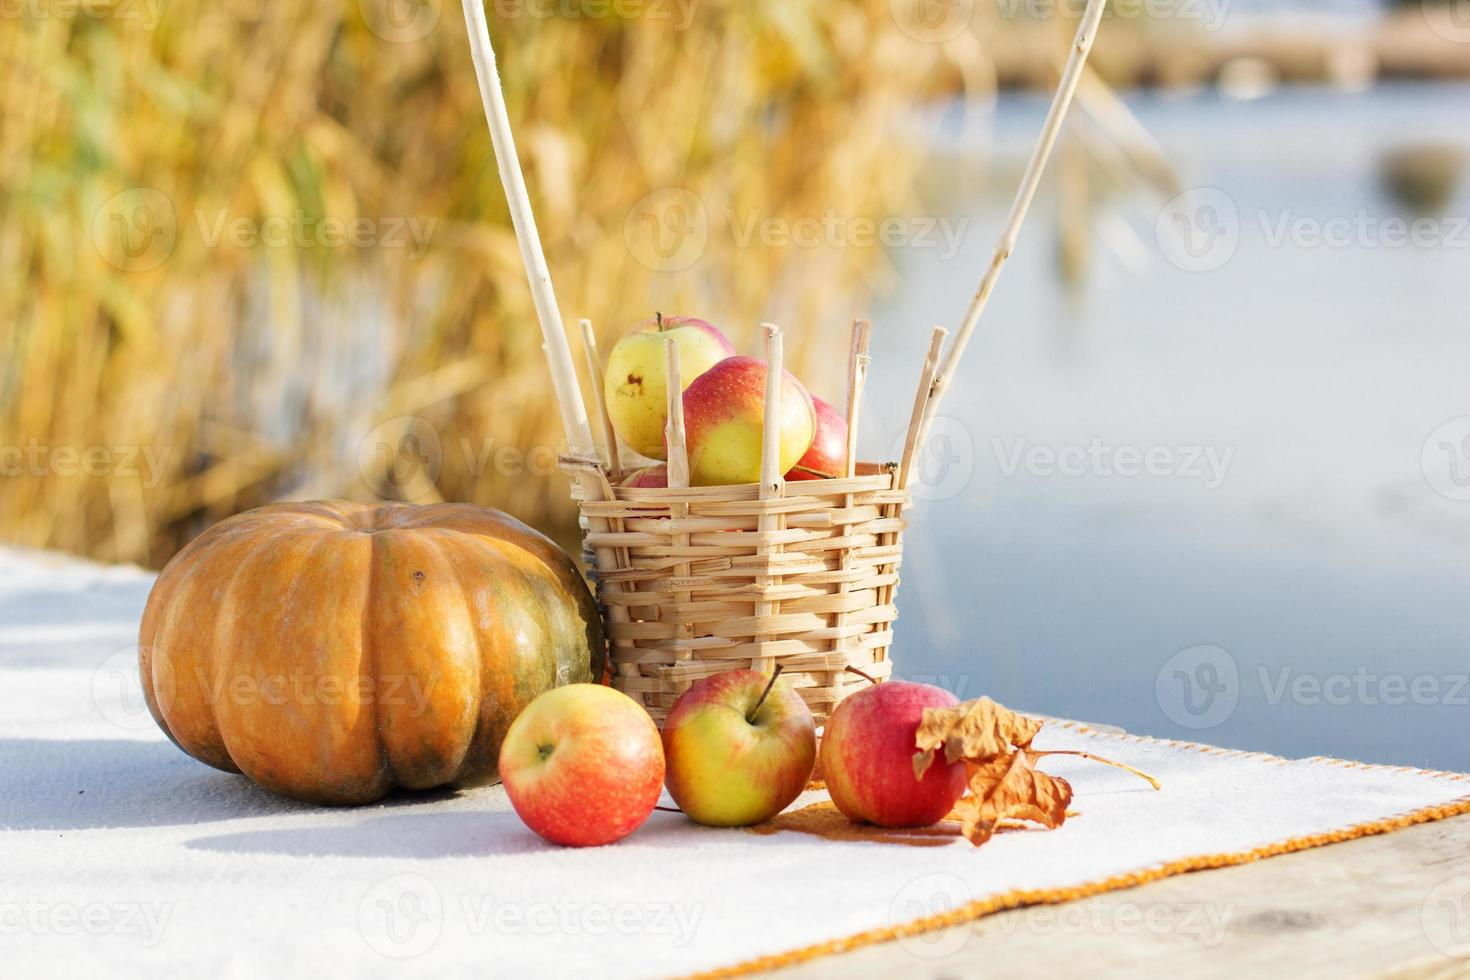 Pumpkin and basket with apples on table photo